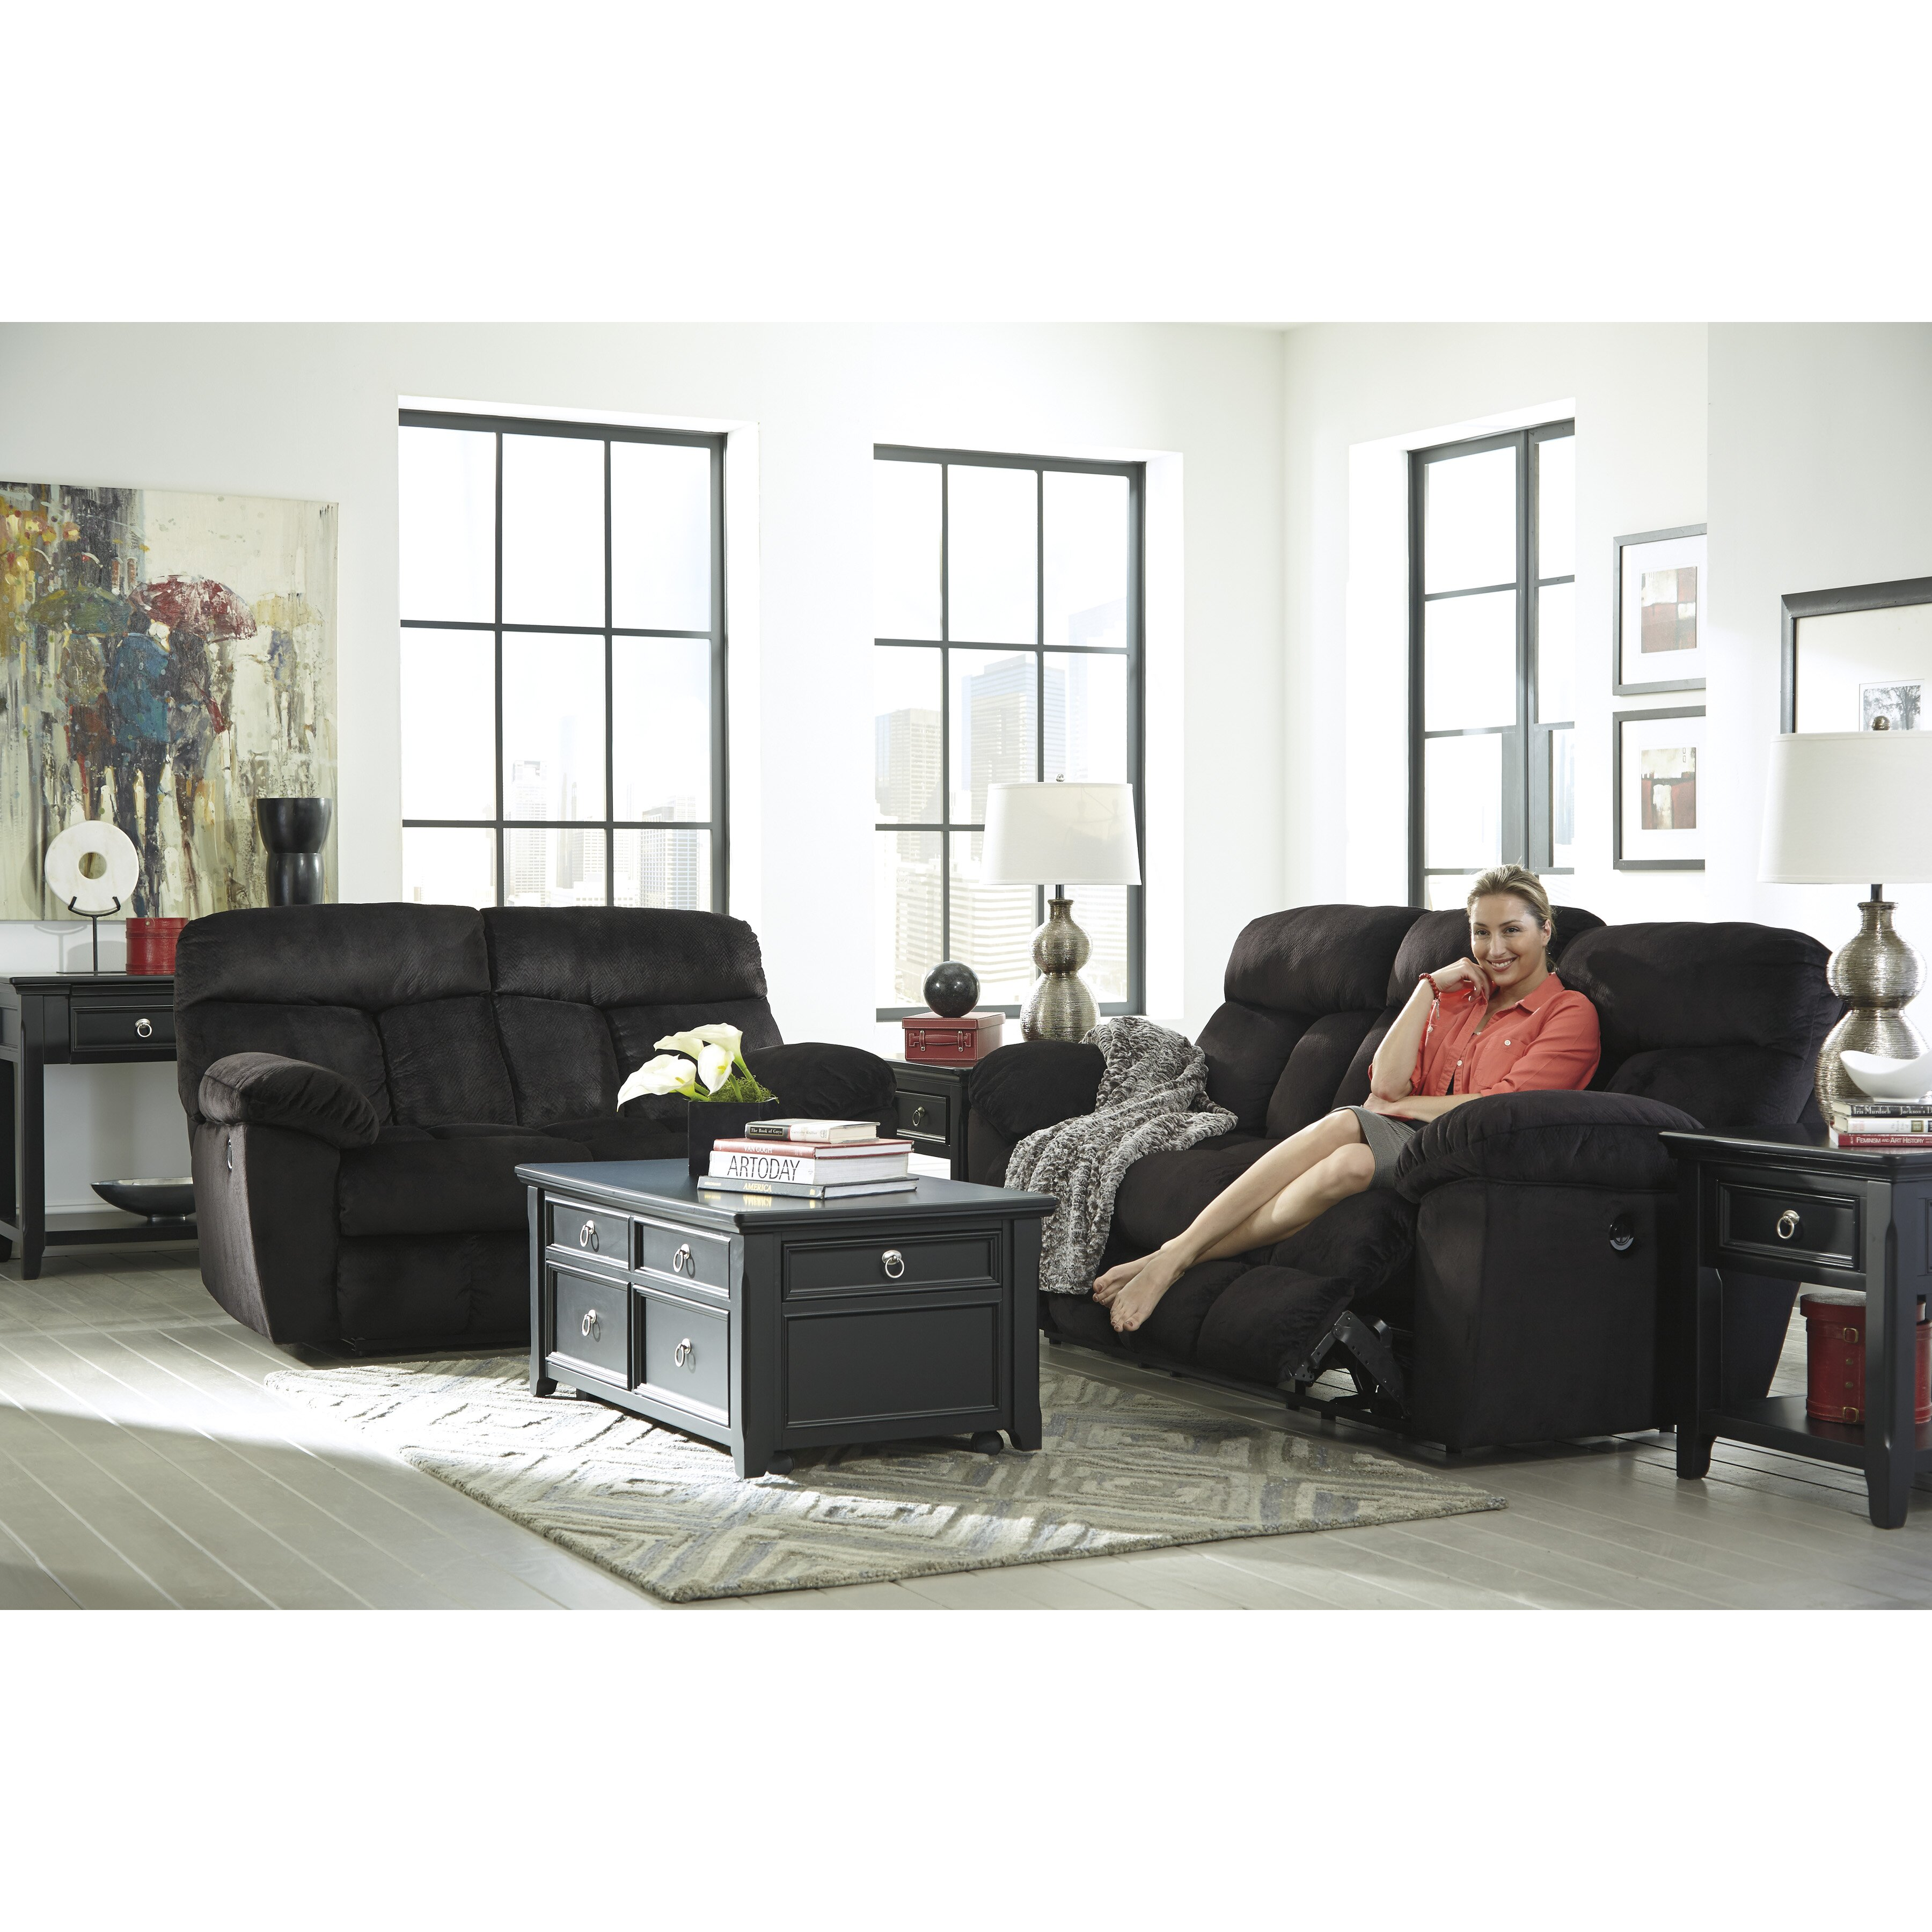 Signature Design By Ashley Saul Reclining Sofa amp Reviews